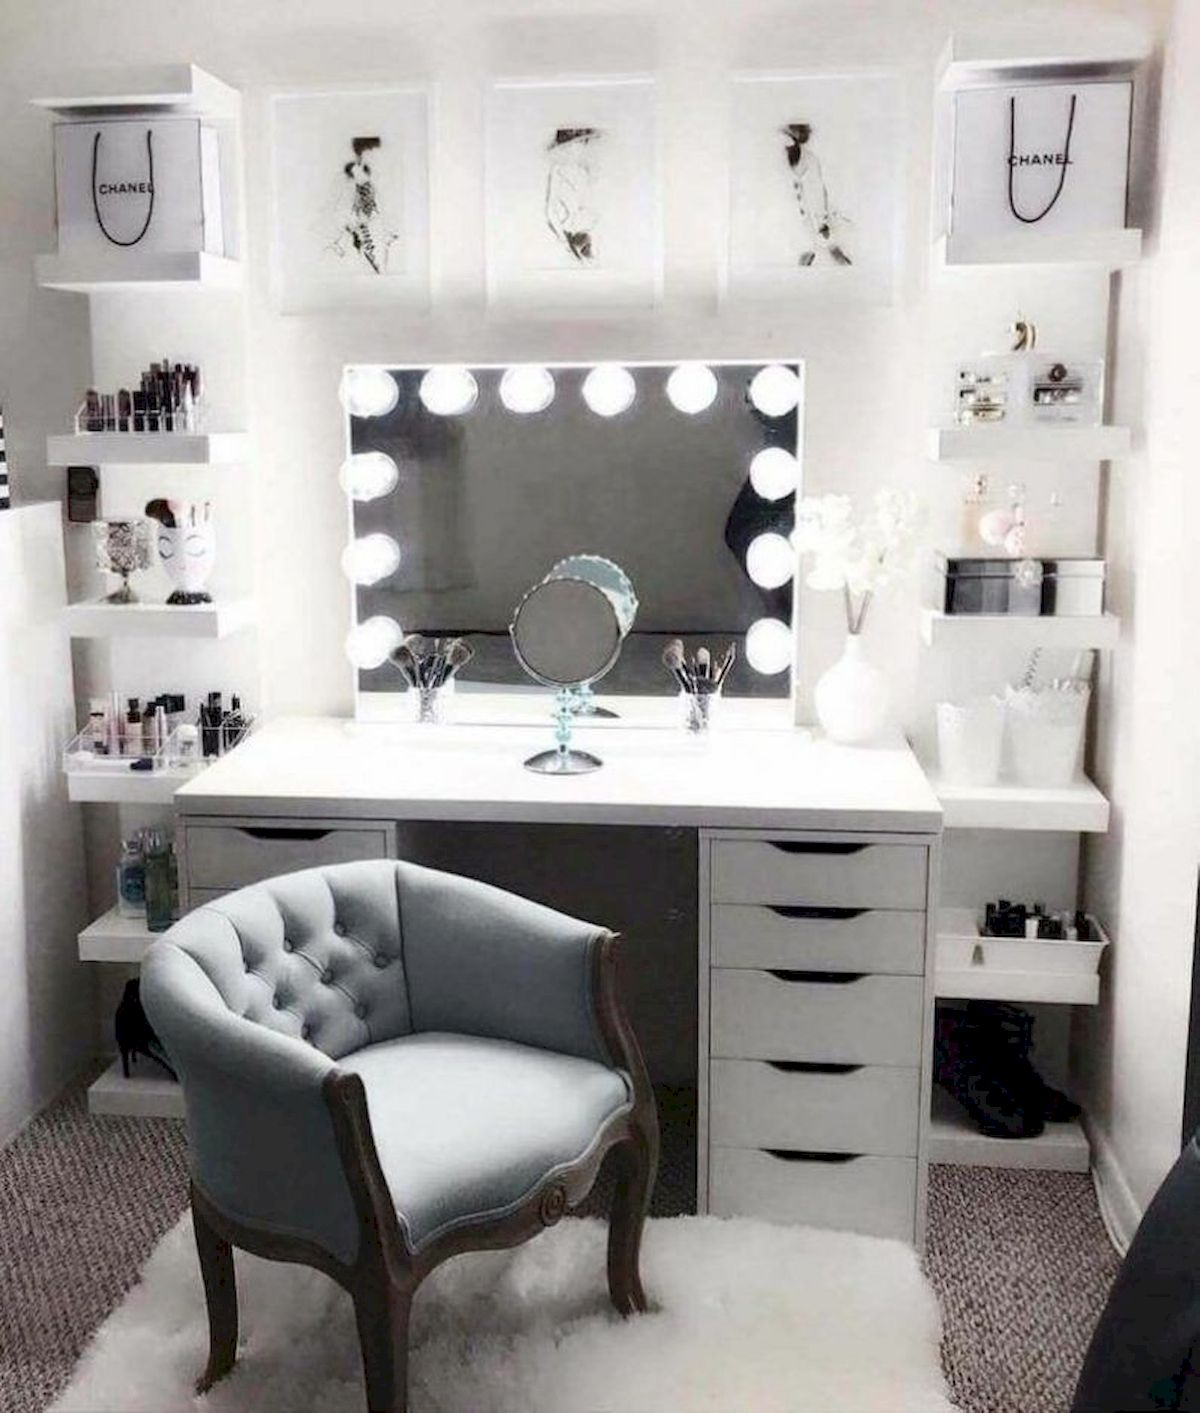 40 Beautiful Make Up Room Ideas in Your Bedroom (16)